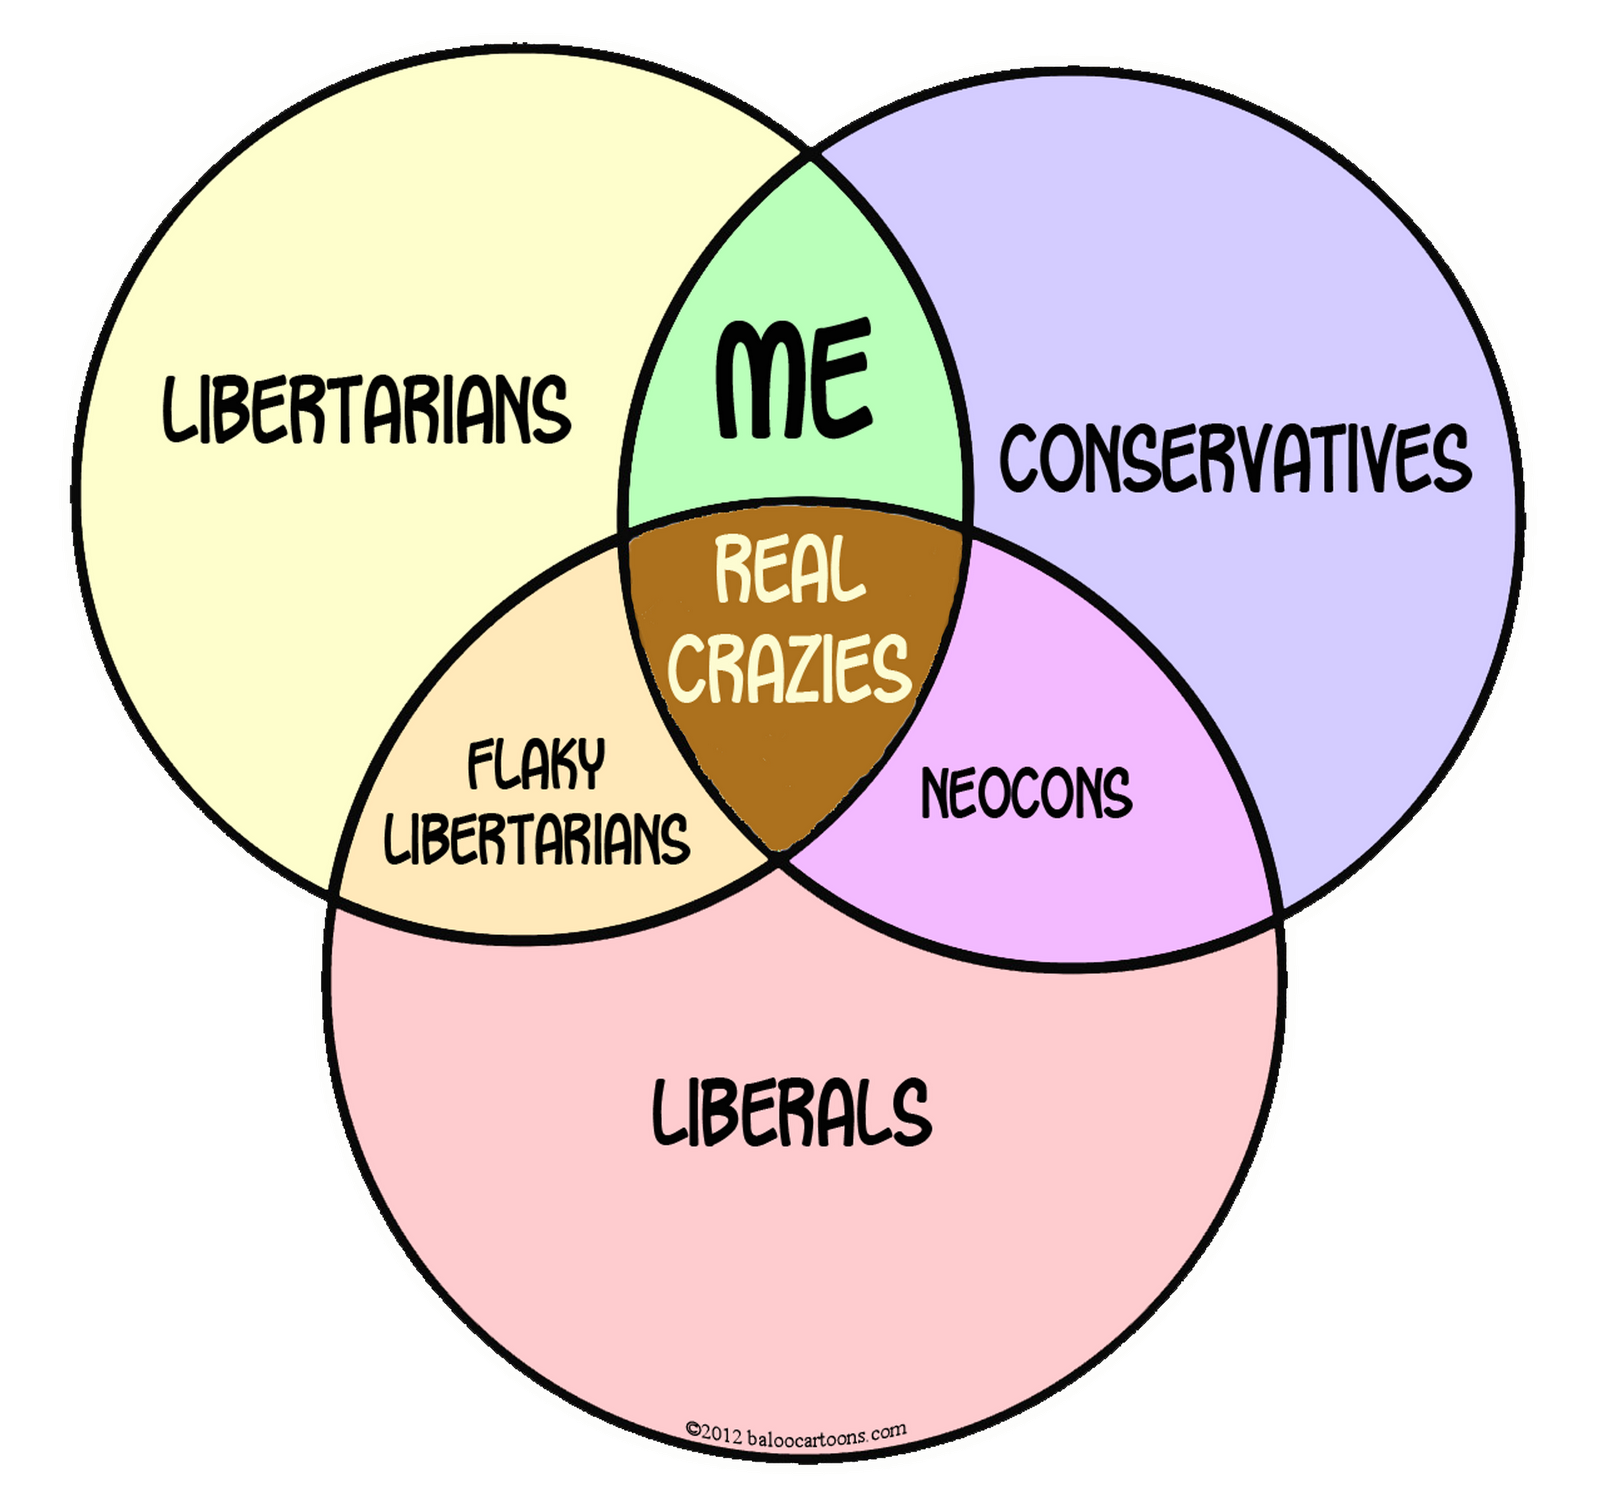 Communism Vs Socialism Venn Diagram Wiring For Air Compressor Motor Guide To Libertarian Economics Part 1 The Free Market